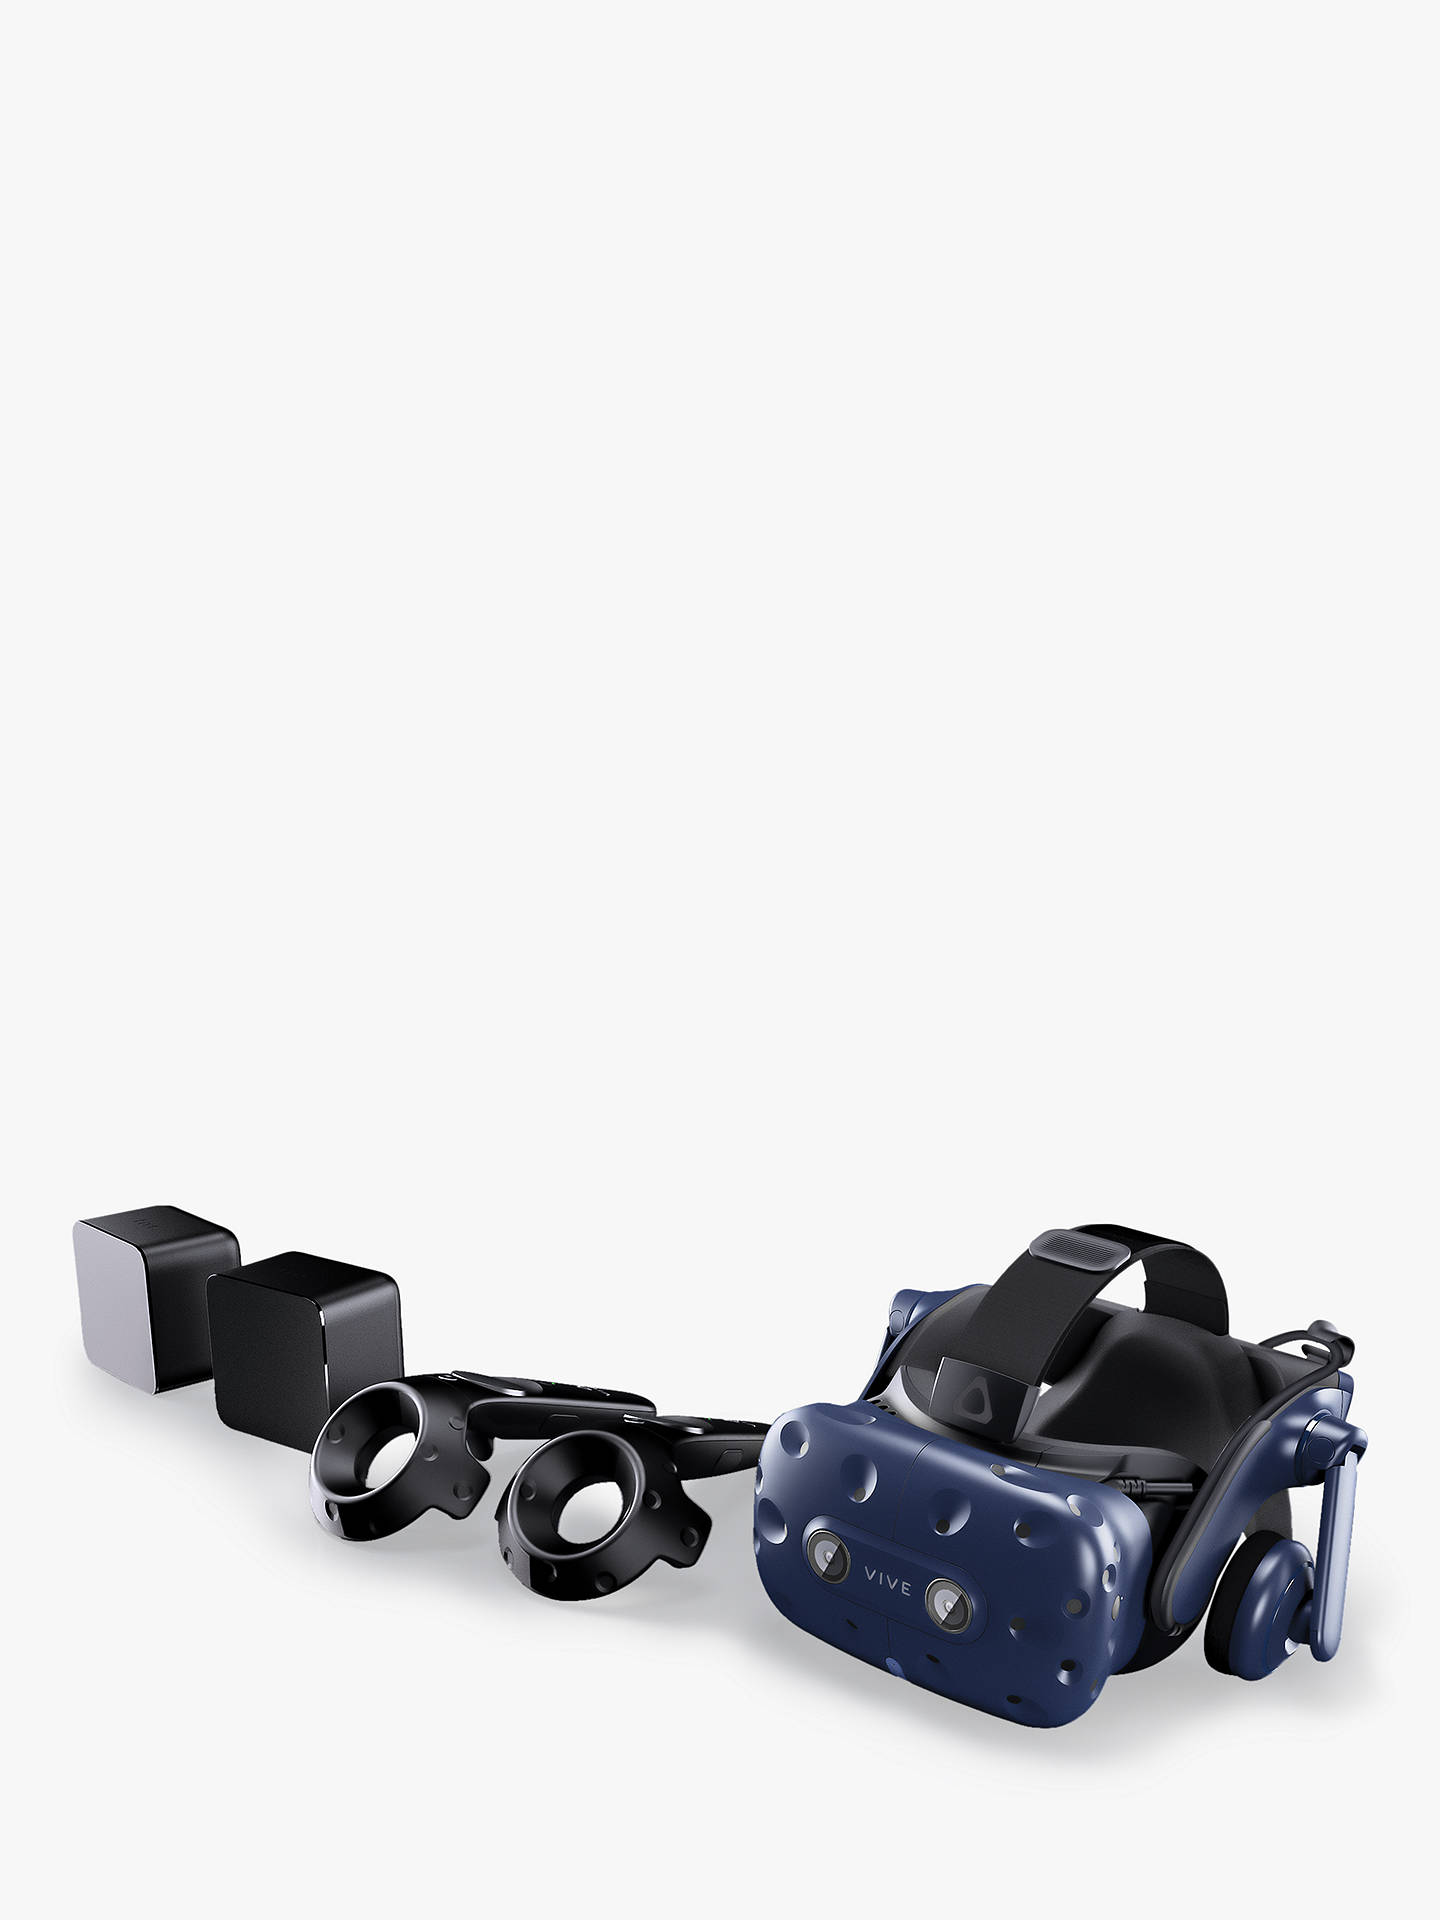 HTC Vive Pro VR Starter Kit, VR Headset, x2 Base Stations, x2 Controllers  and Accessories